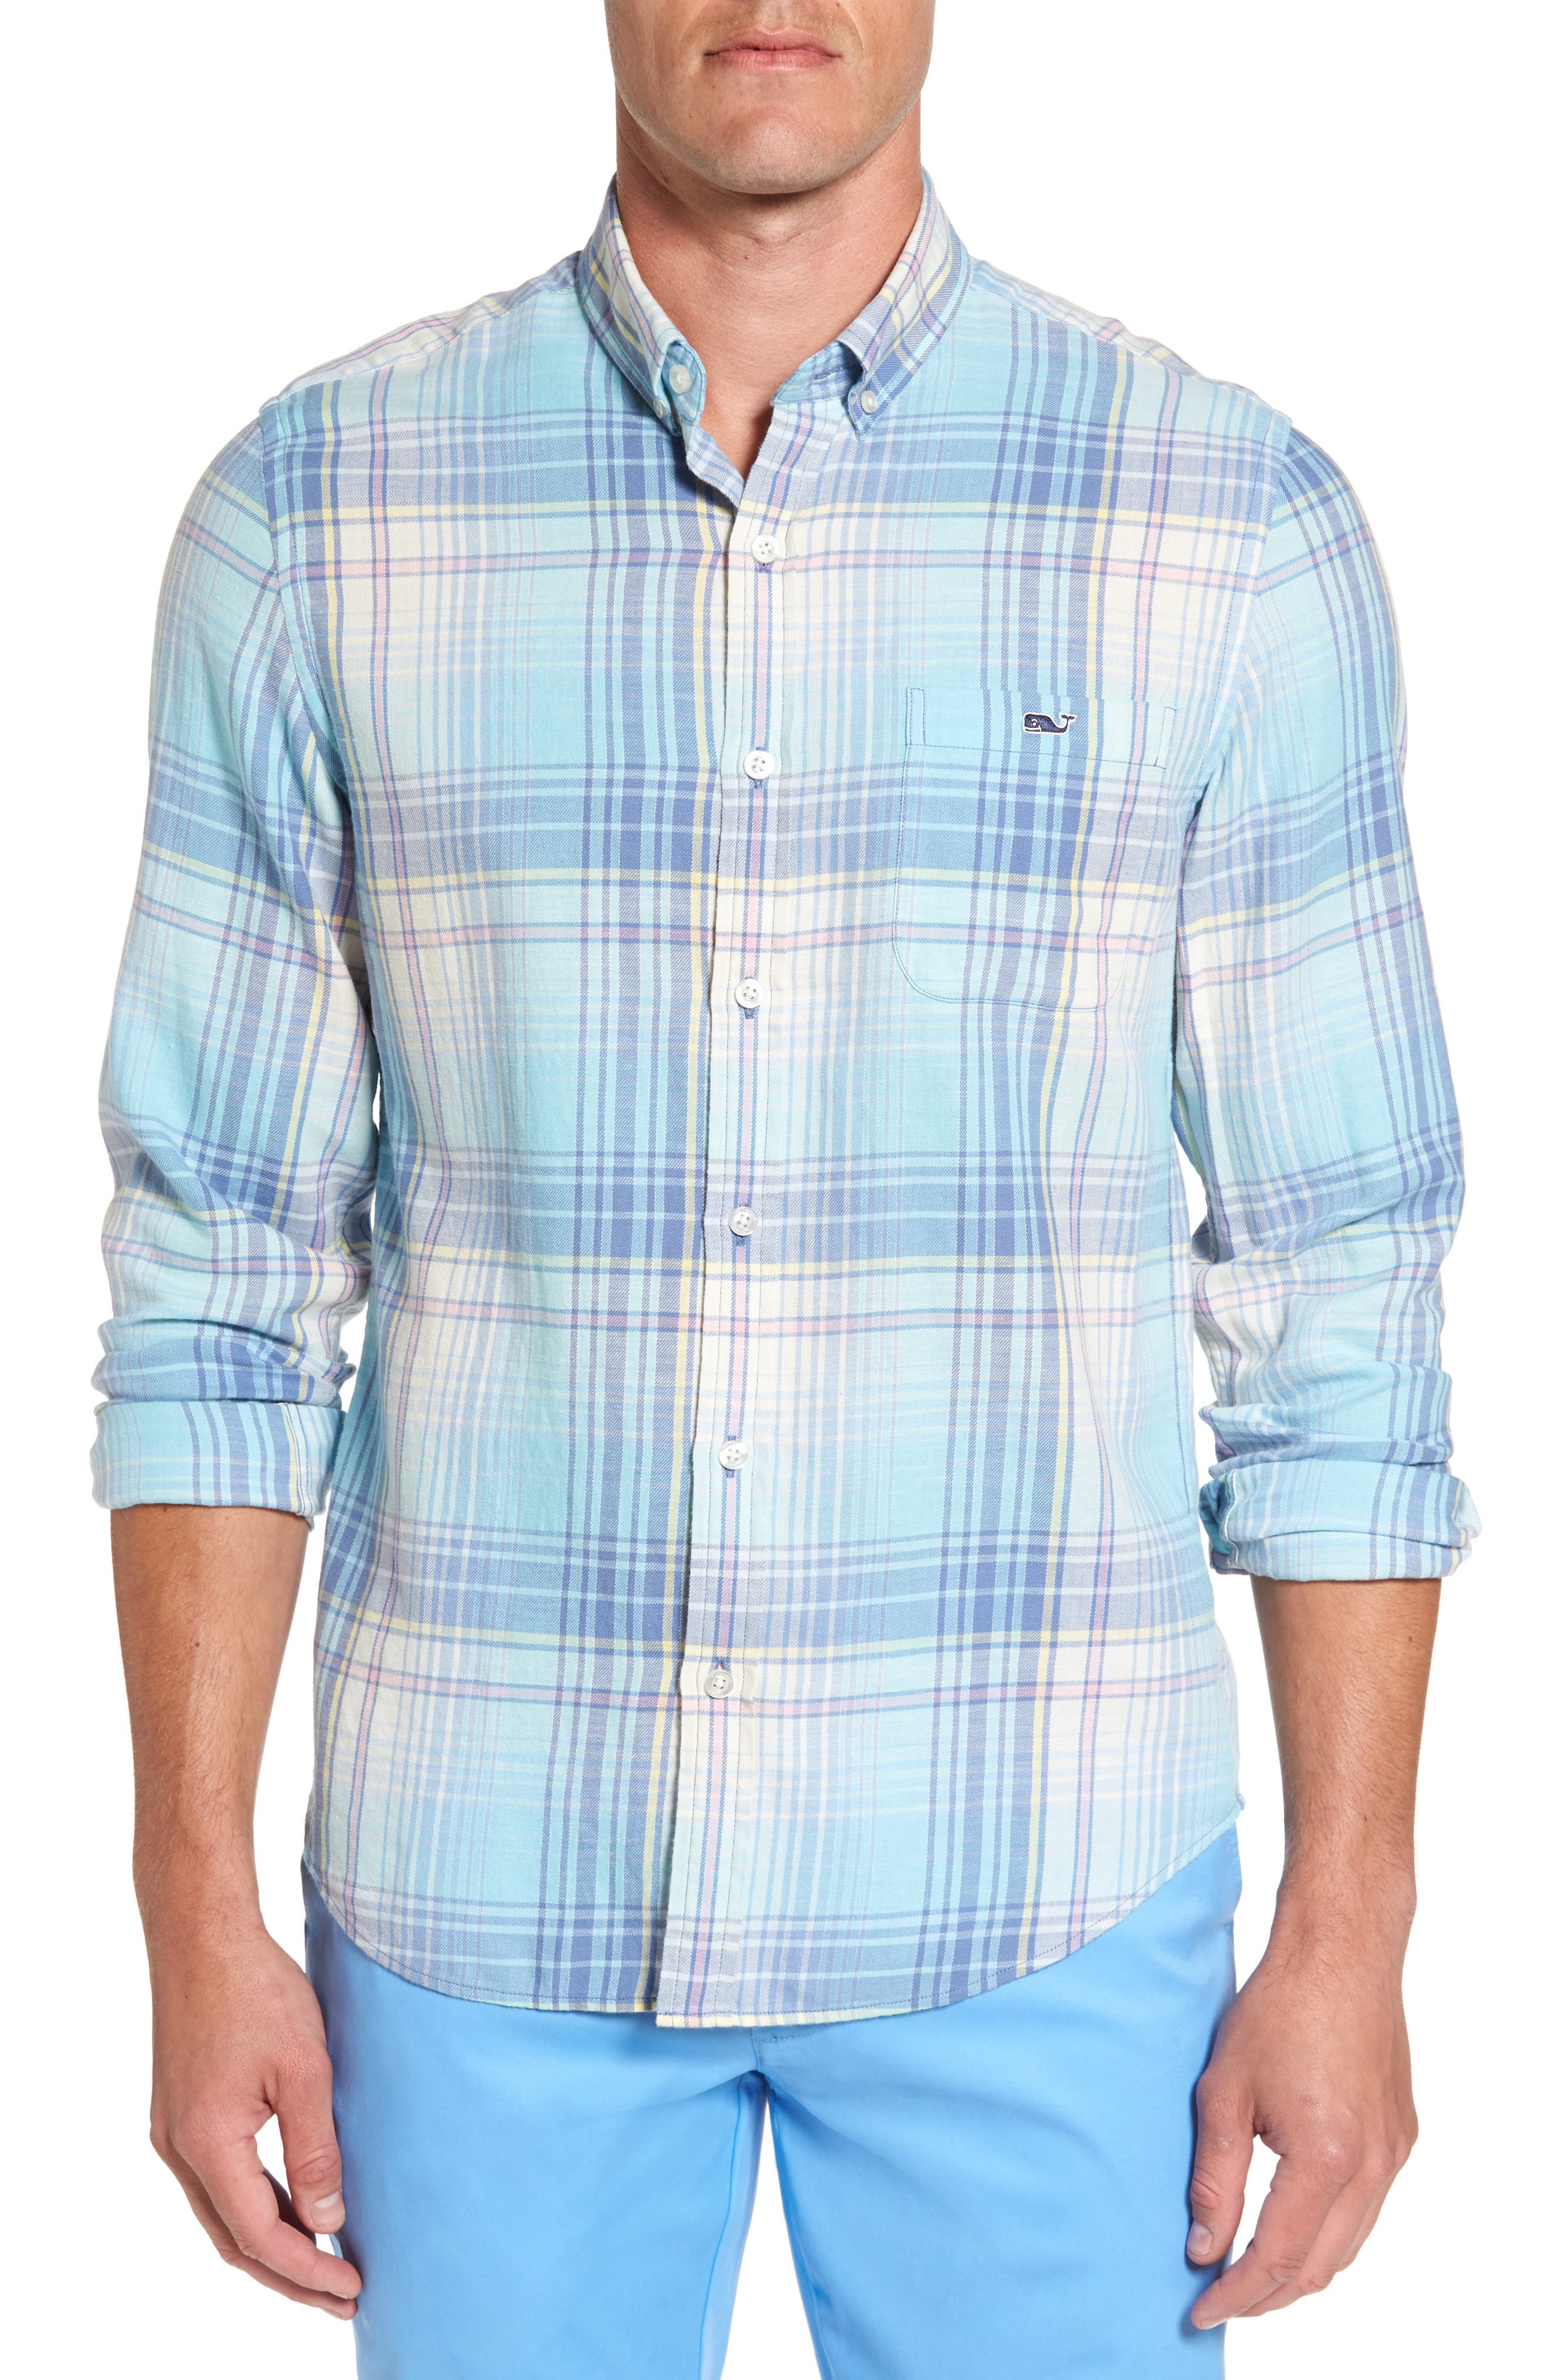 Pequot Plaid Slim Fit Tucker Sport Shirt,                             Main thumbnail 1, color,                             435